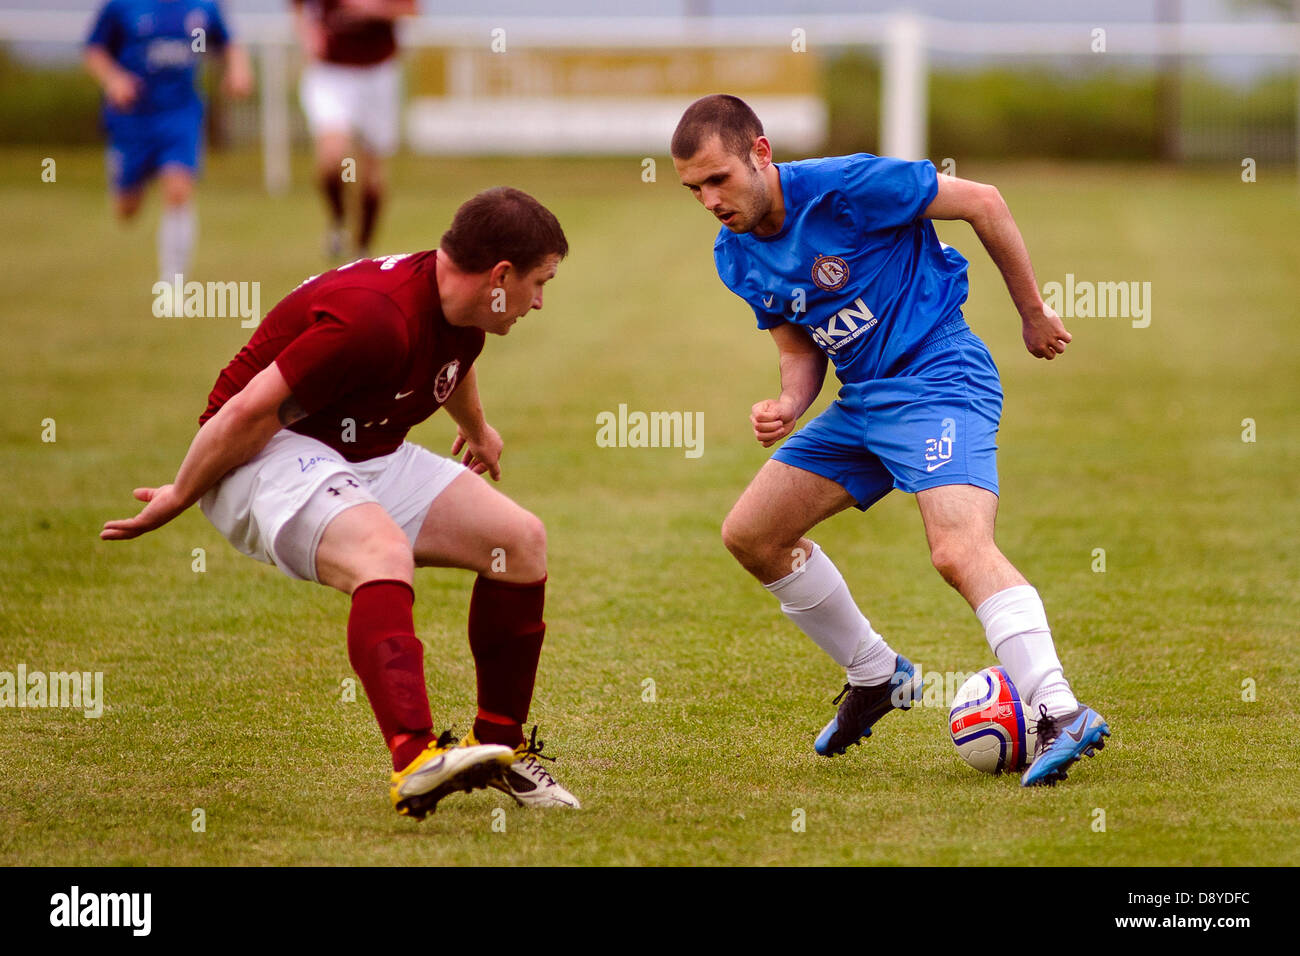 Kelty, Fife, Scotland, UK. 5th June 2013. Lochee on the attack during the East Region Super league match, Kelty - Stock Image